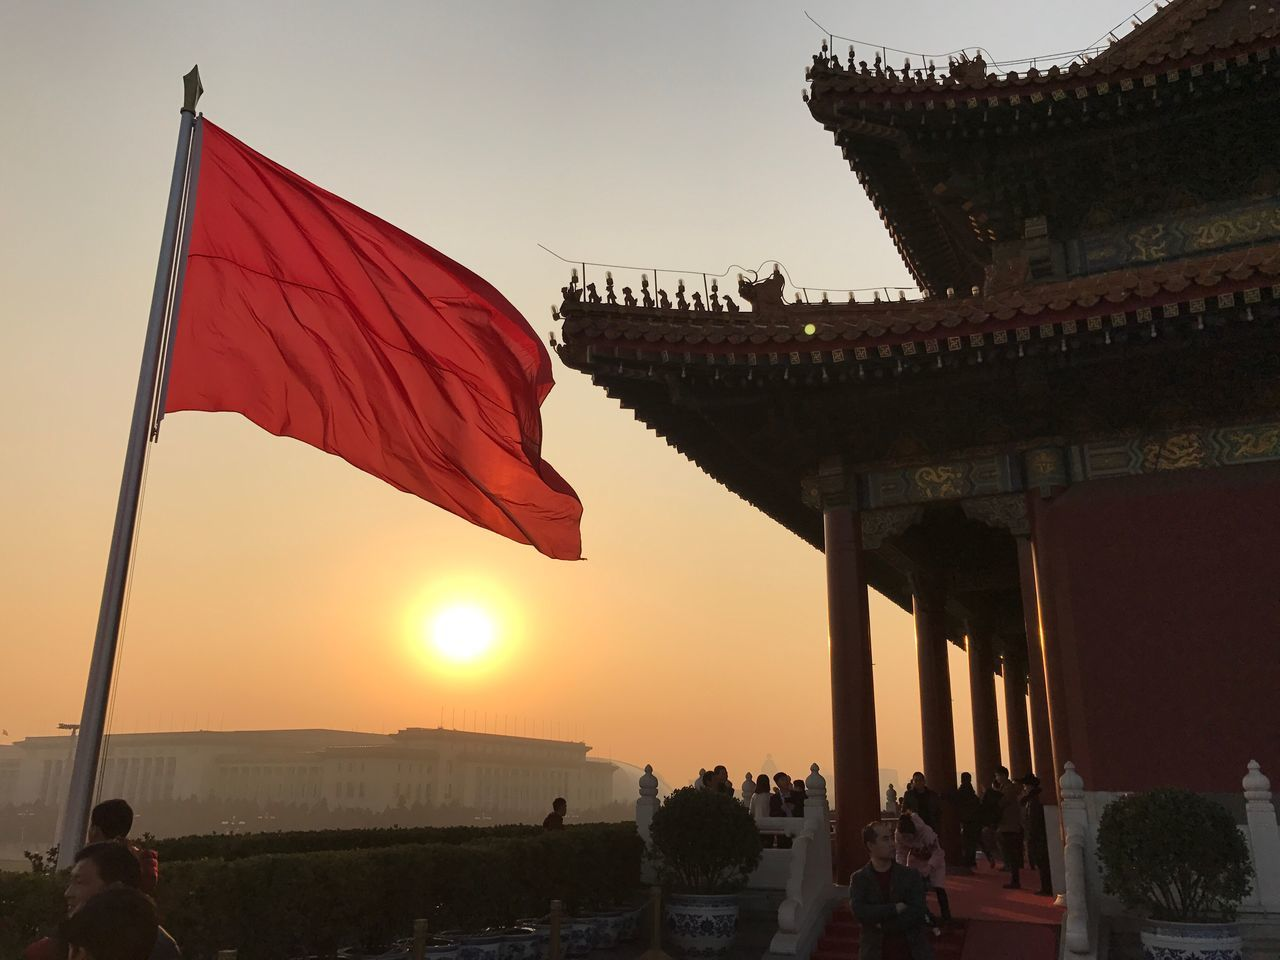 Built Structure Architecture Sky Sunset Building Exterior City Outdoors Day Flags Flag Red Sunlight Sun Forbidden City Tiananmen Square Palace Verbotenestadt Smog Enjoying The Sun Sunset_collection Megacity Discovering ASIA Asian Culture Sundown